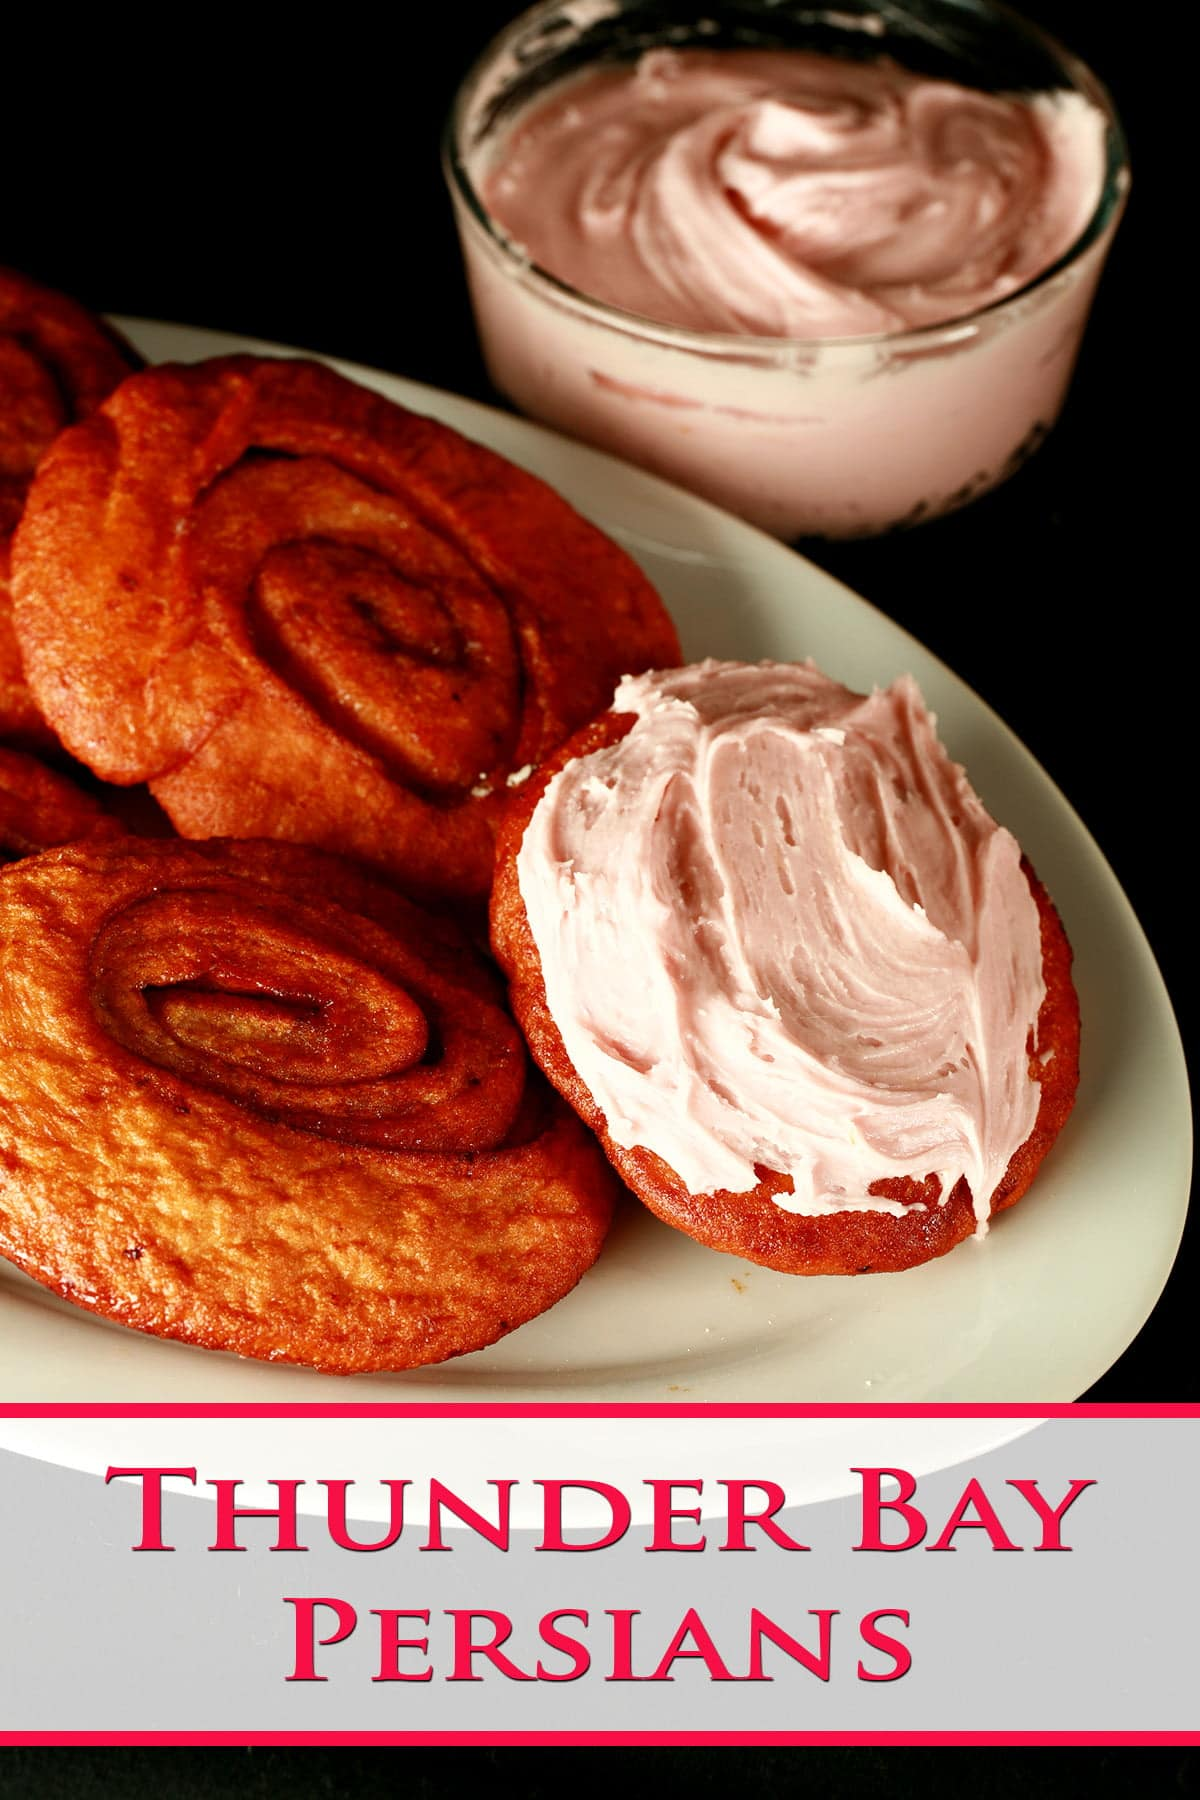 Deep fried cinnamon rolls are arranged on a white platter, one is spread with a pink frosting!